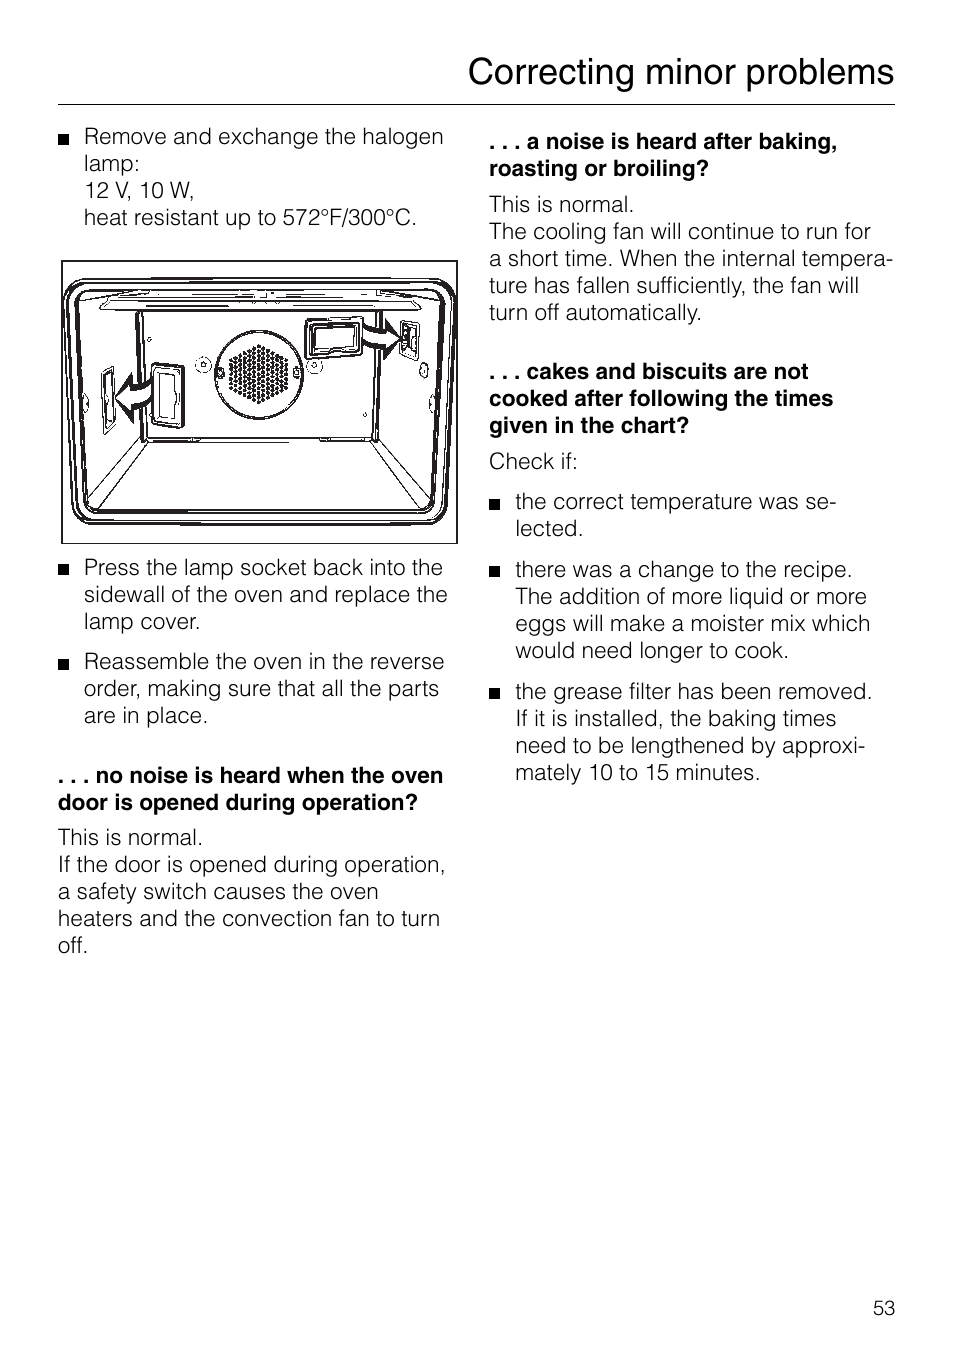 Correcting minor problems | Miele H 277 B User Manual | Page